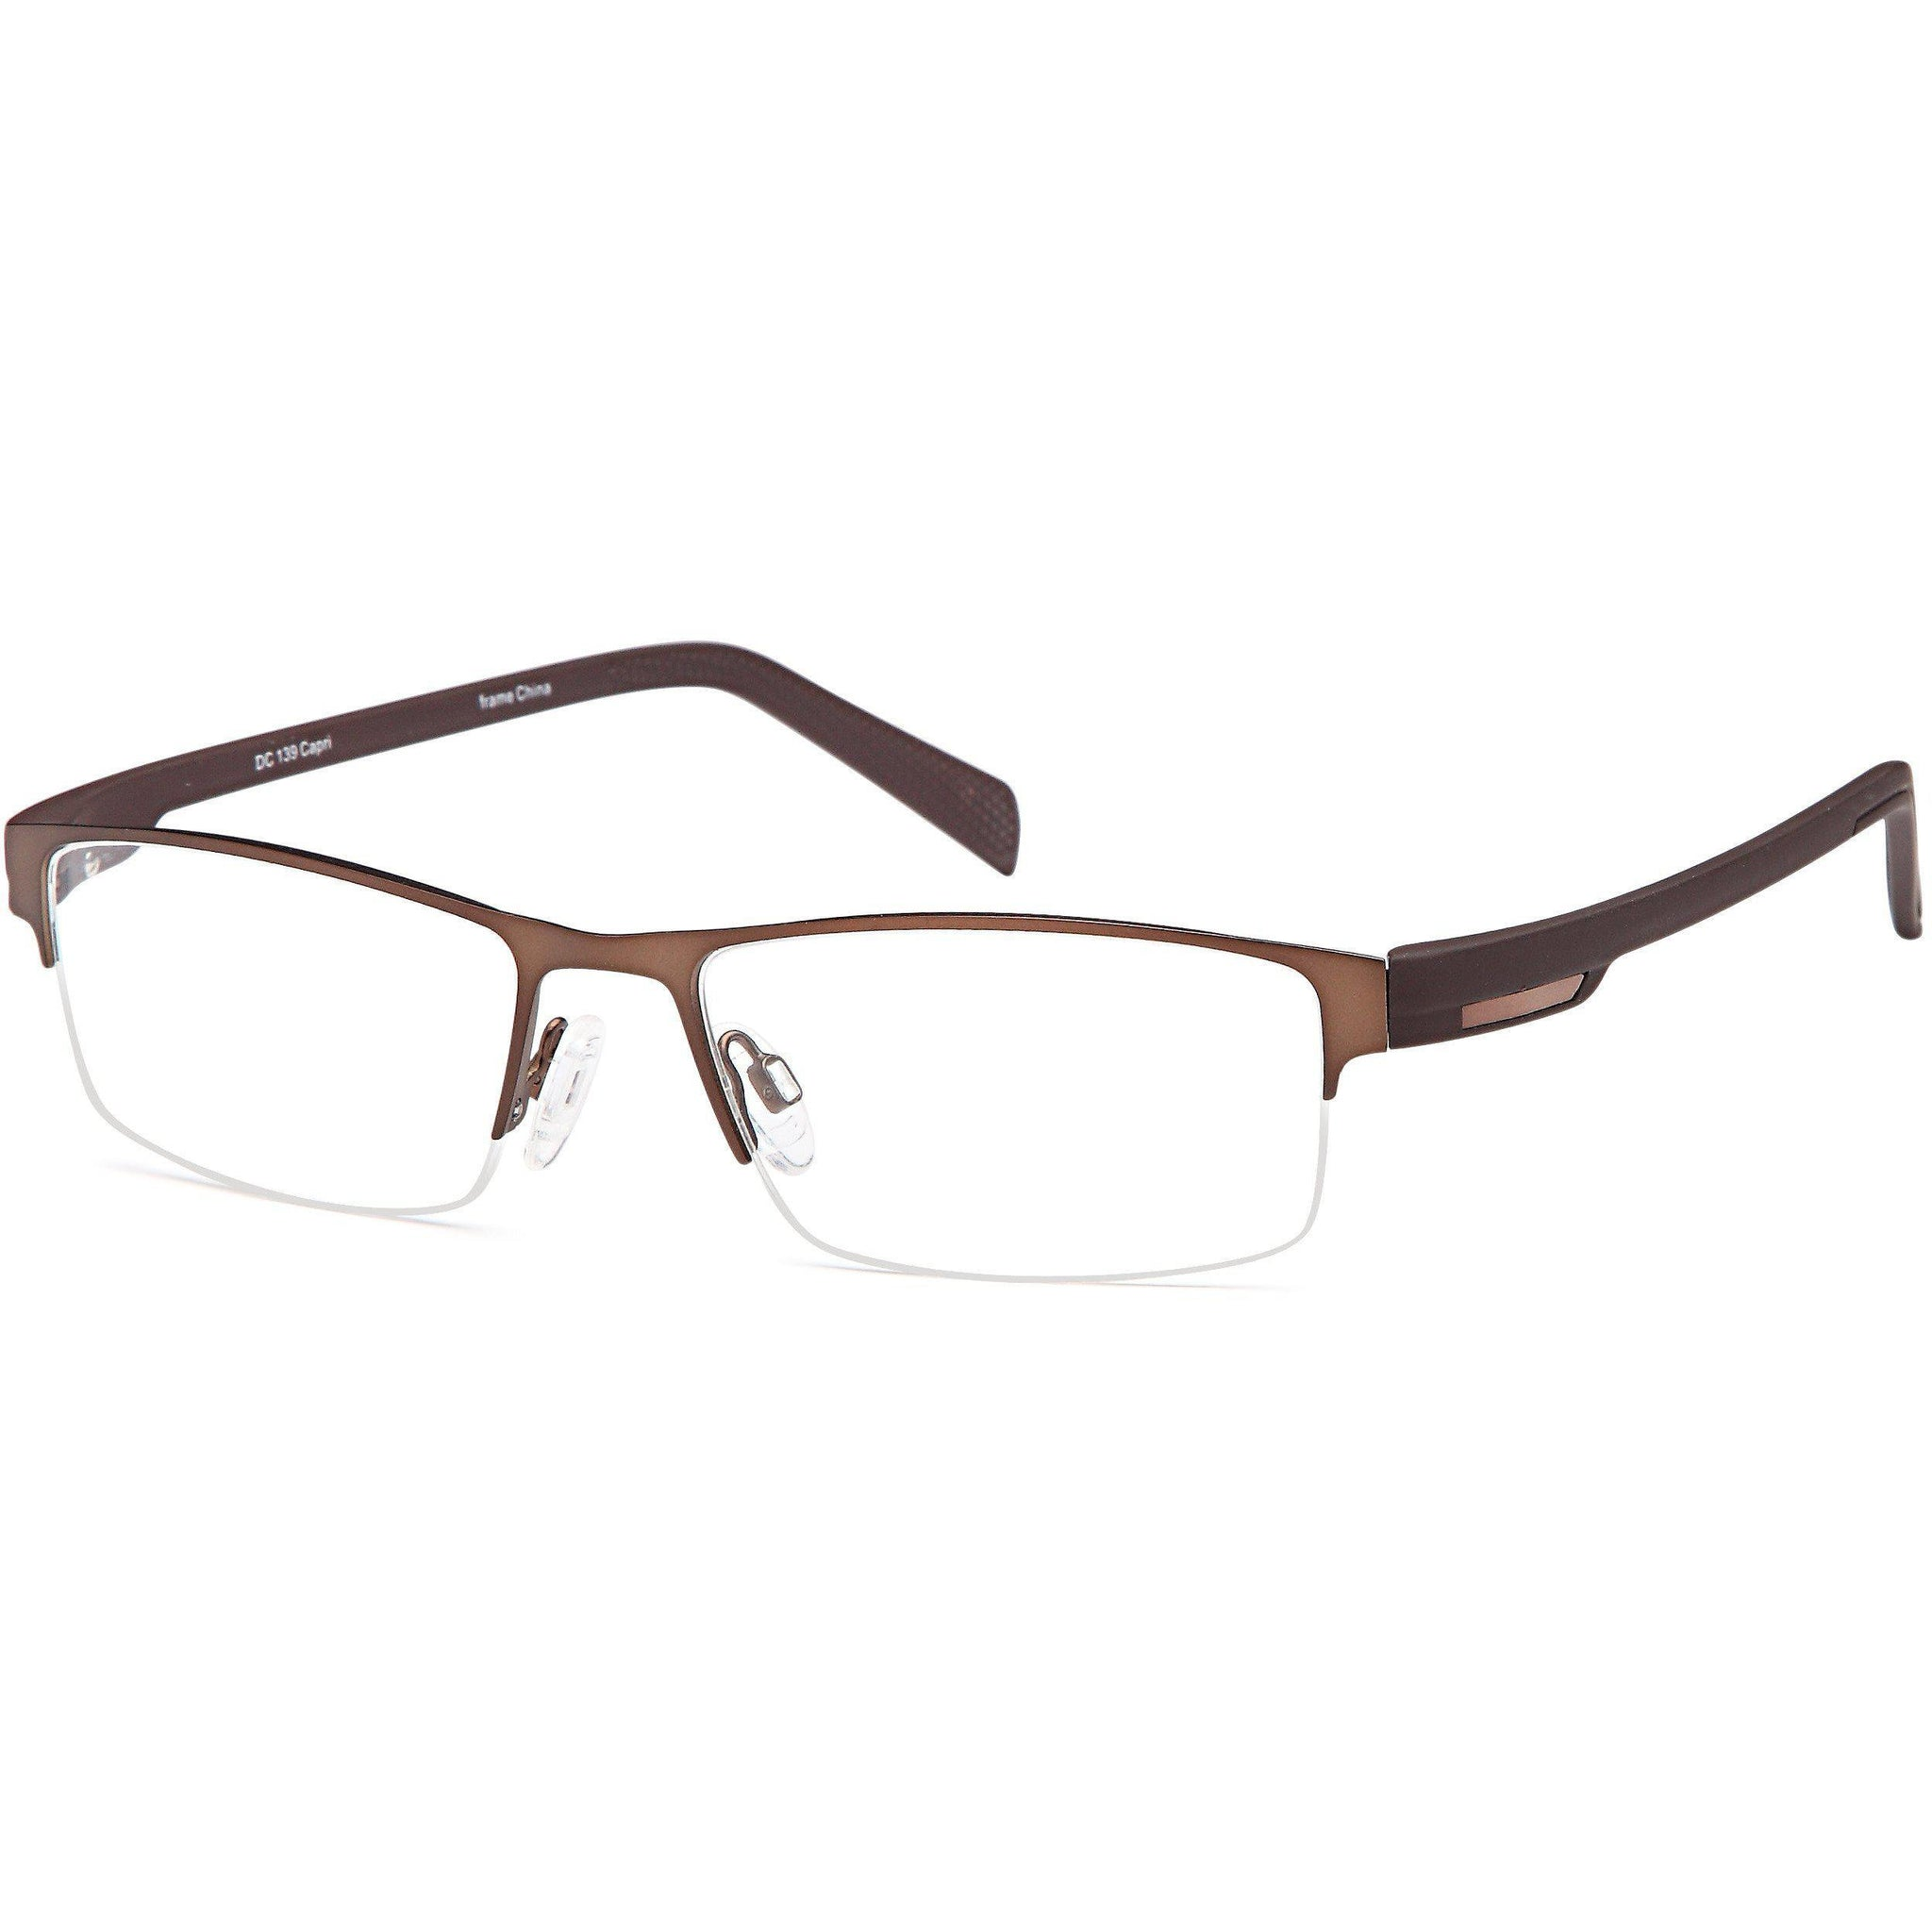 Di Caprio Prescription Glasses DC 139 Eyeglasses Frame - timetoshade